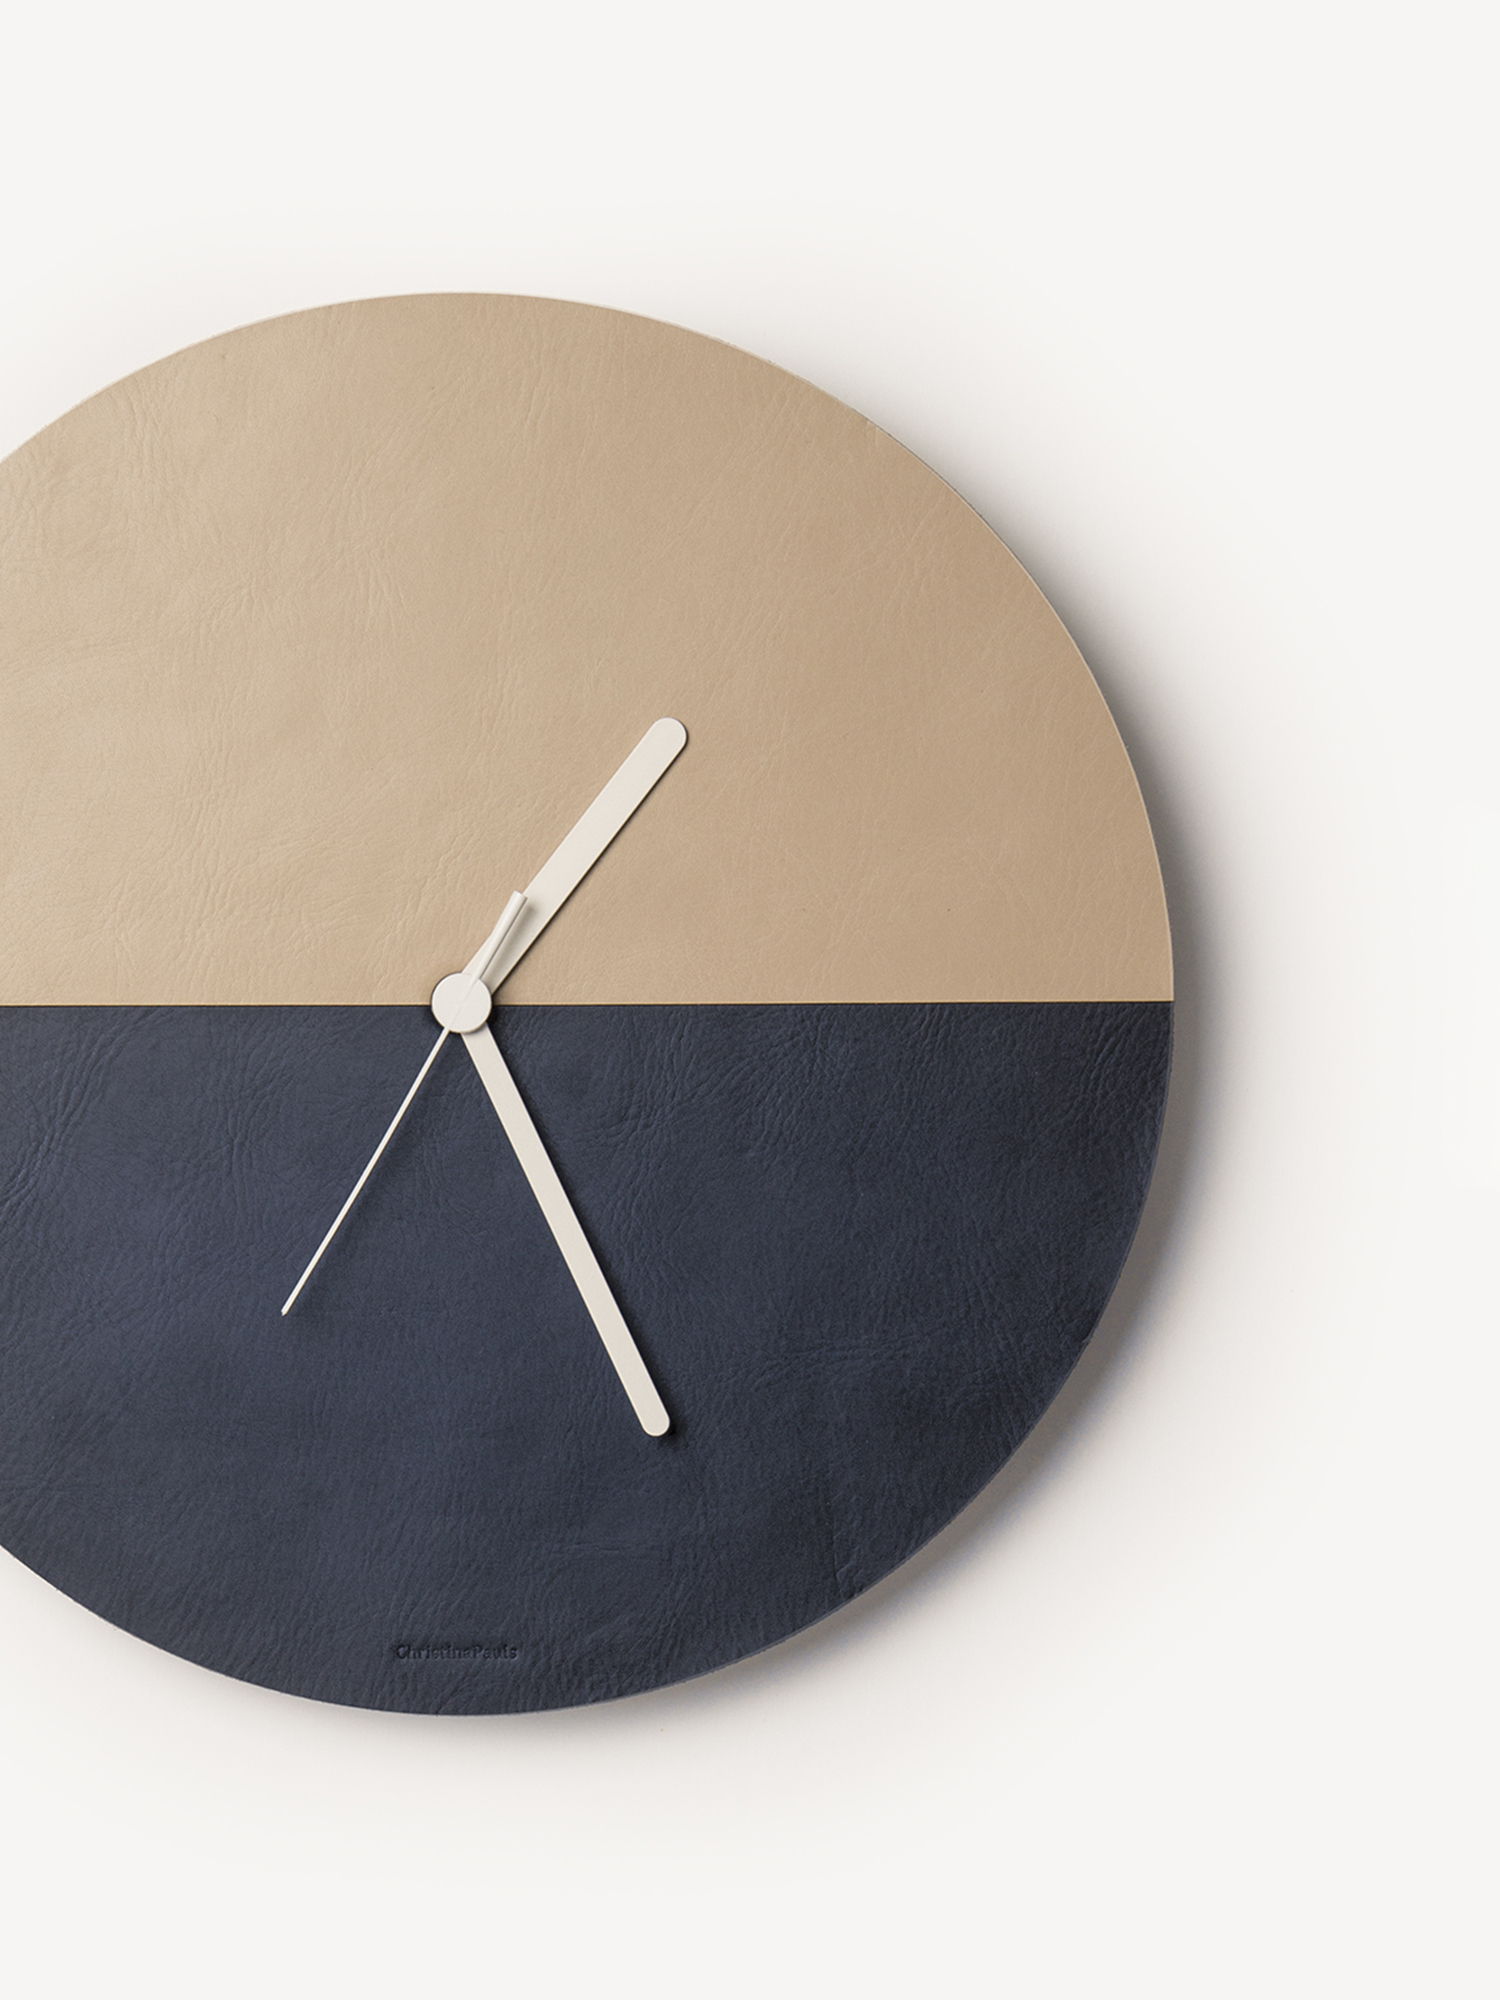 Leder-Wanduhr Kami  Leather wall clock Kami